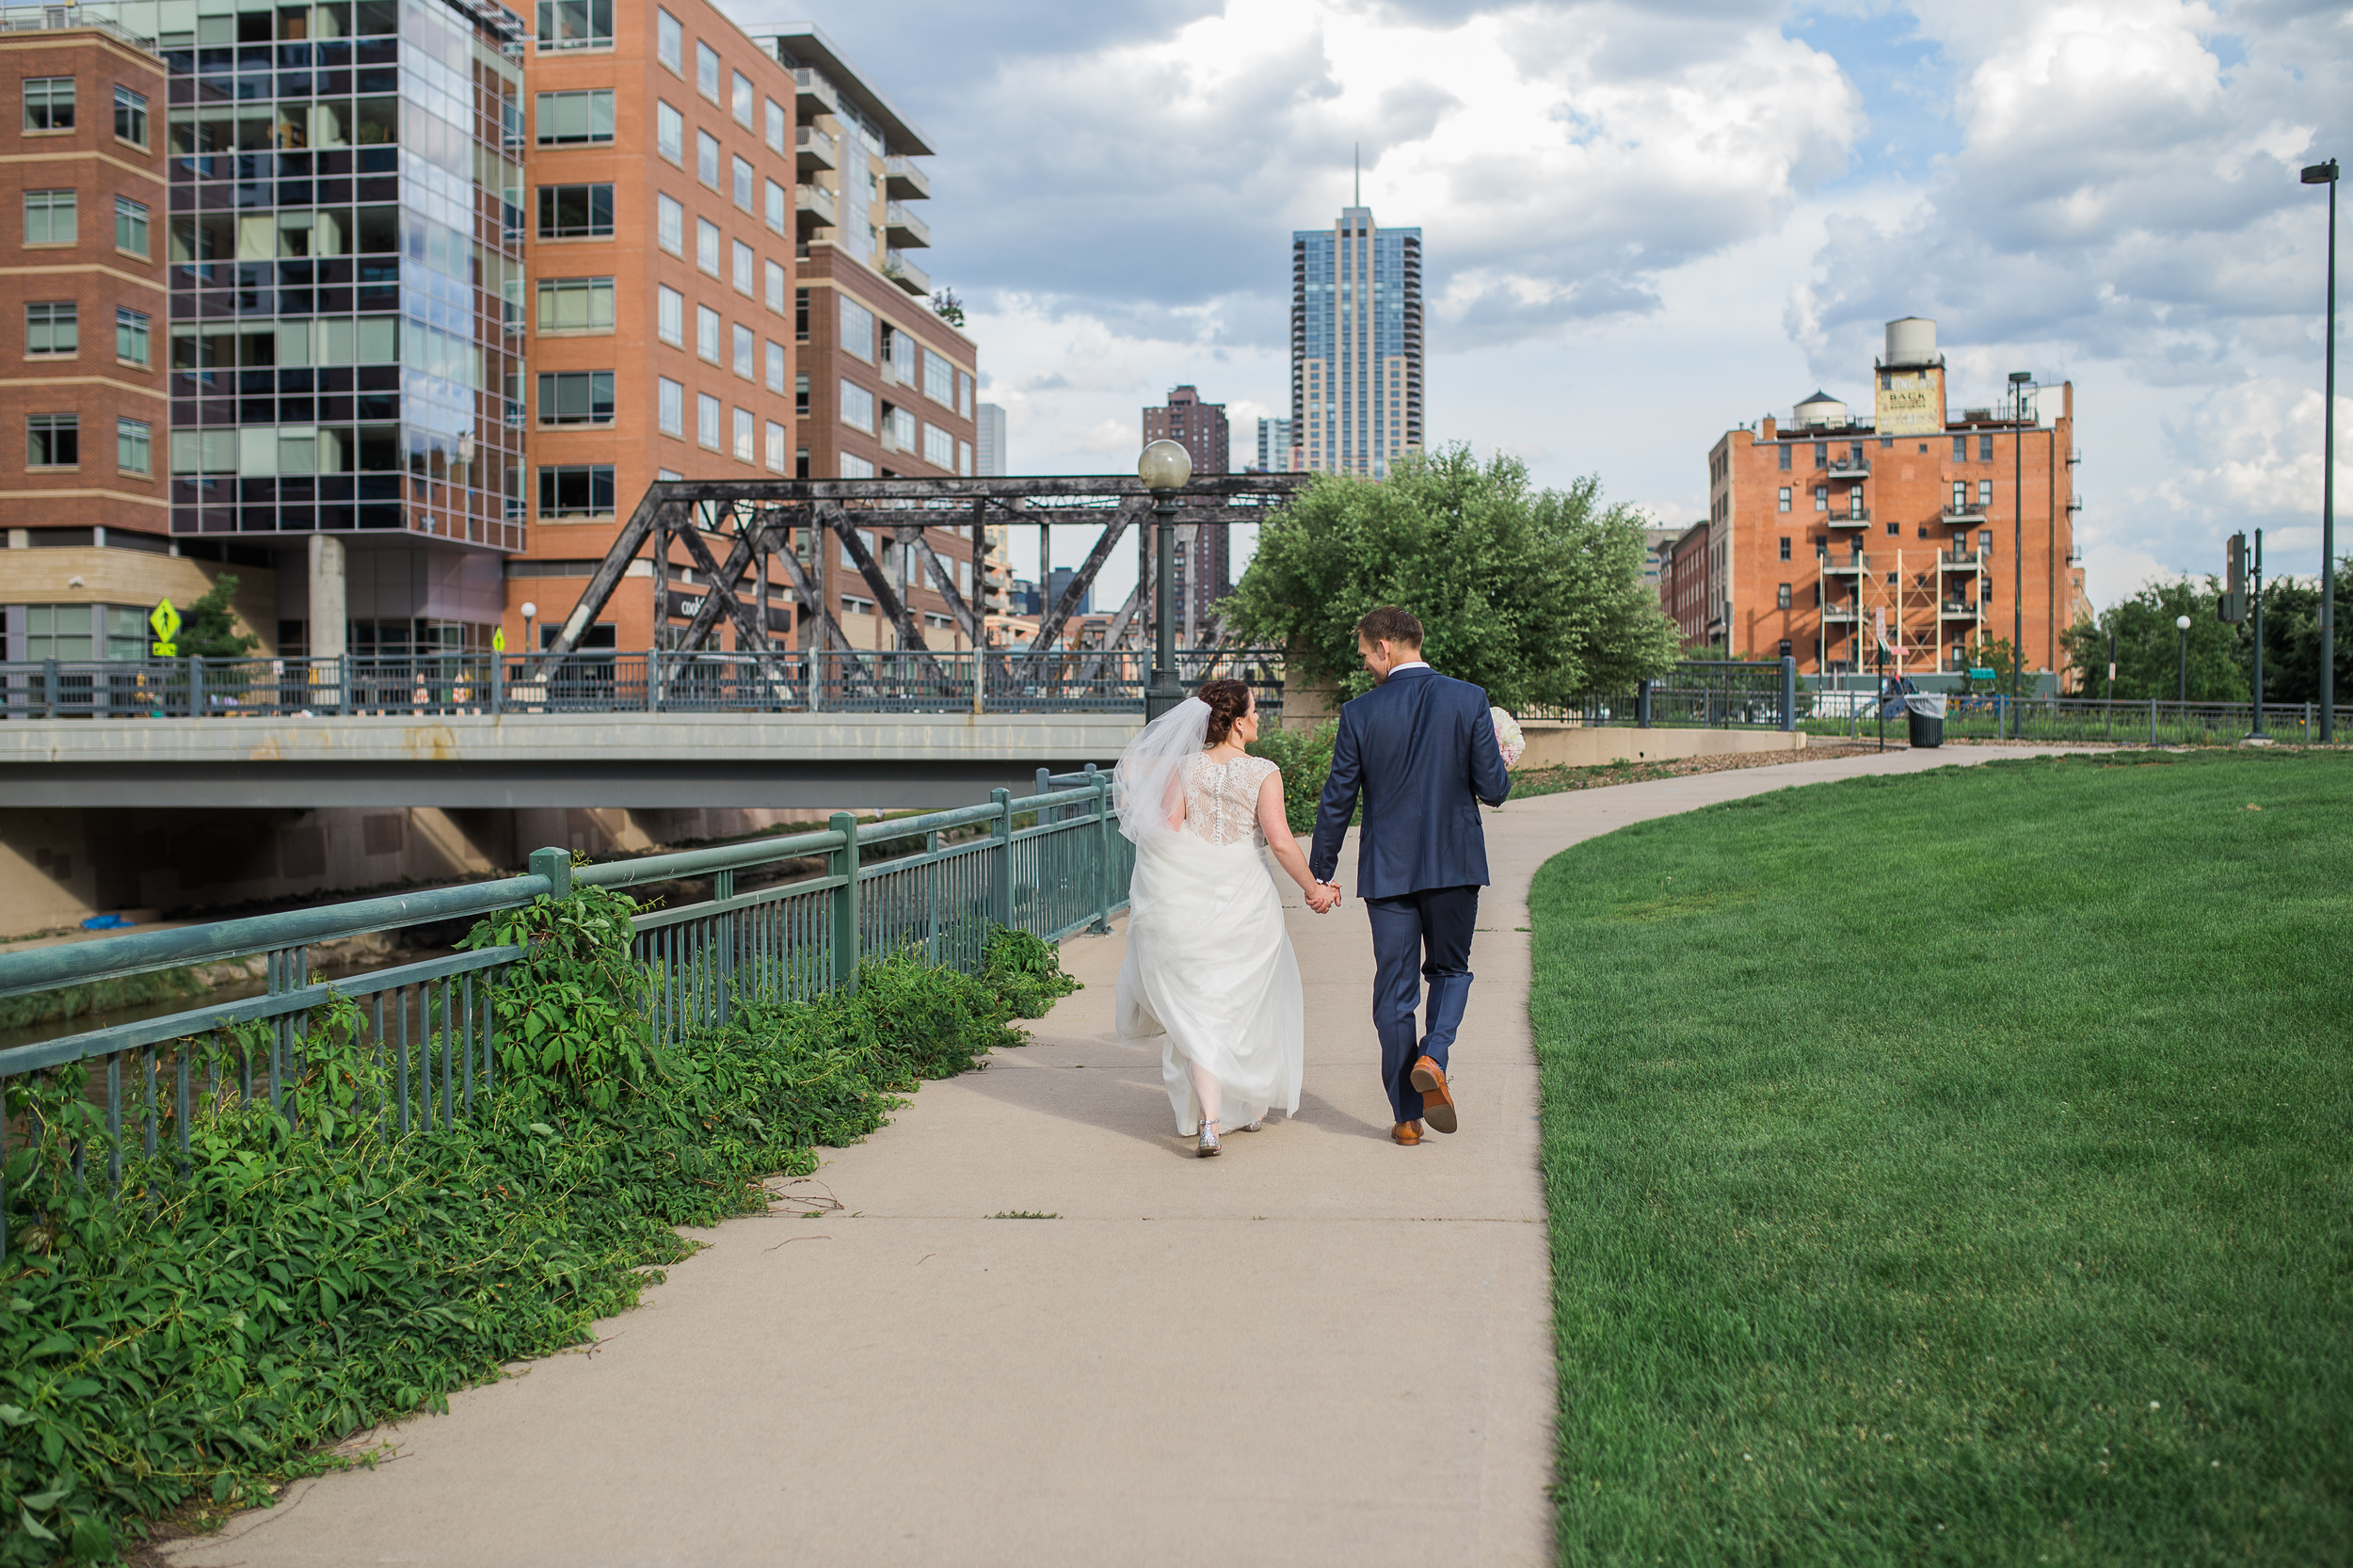 Coohills Wedding Photographer - downtown denver wedding